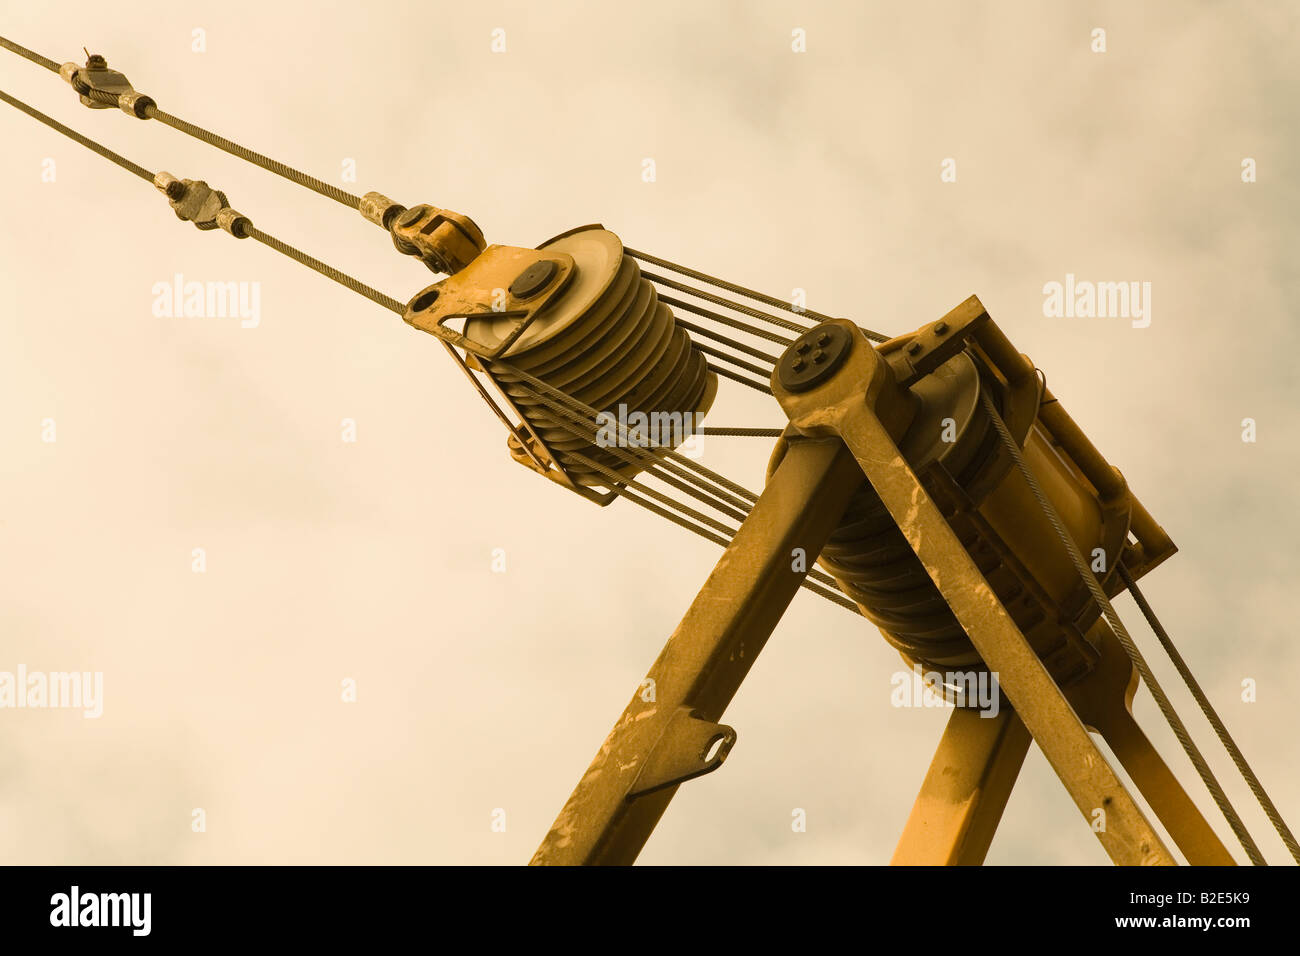 Pulley System On Crane Stock Photo